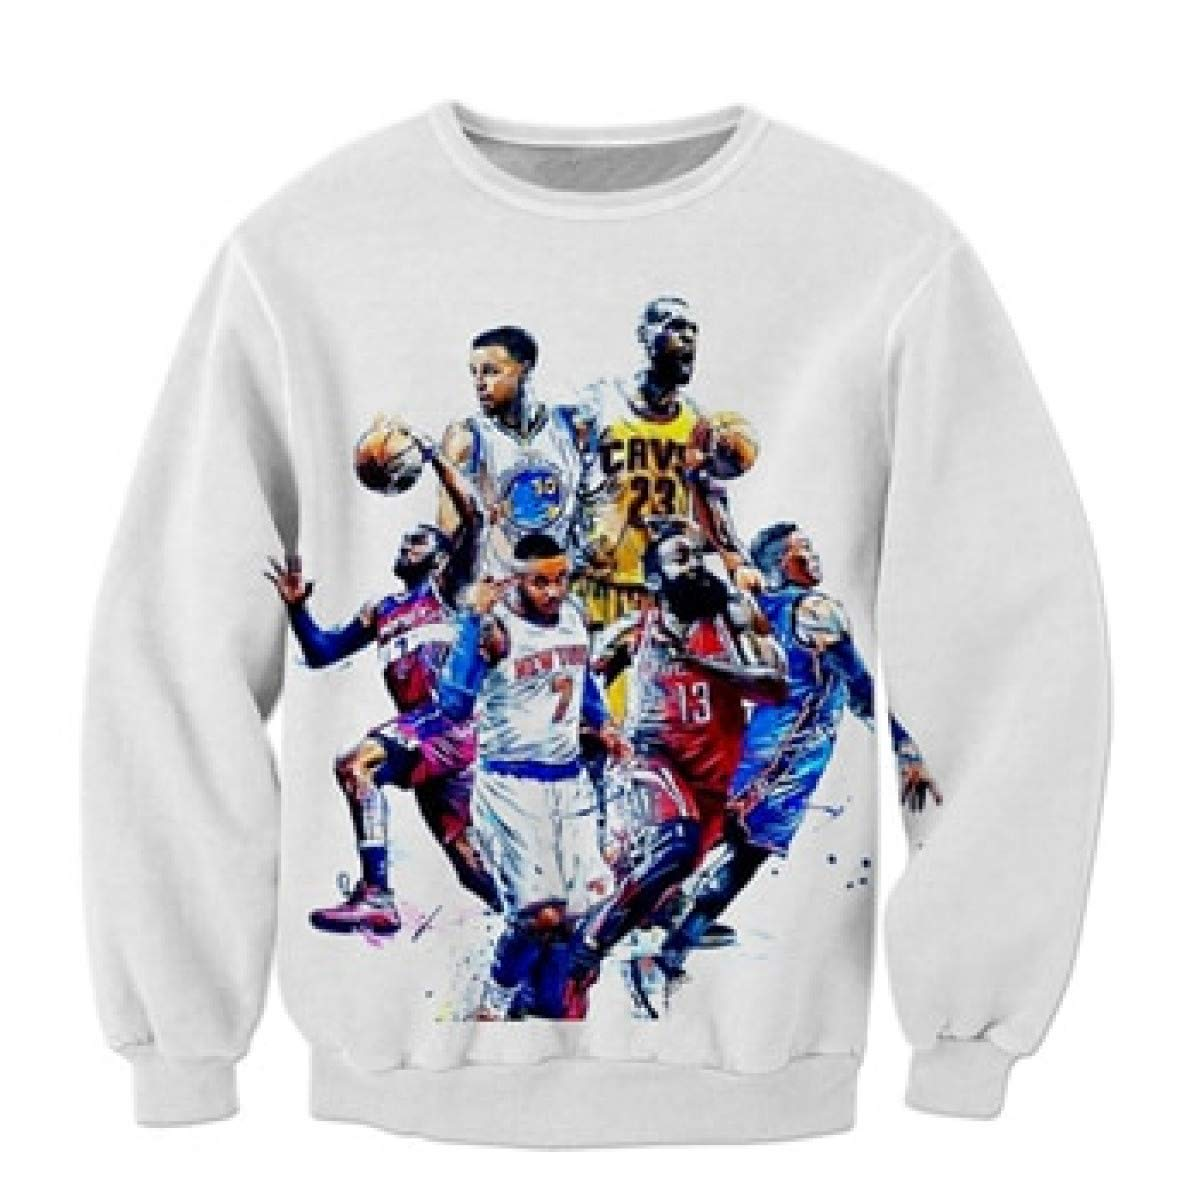 Amazon.com: Warlmarts Hoodies Basketball Hoodies for Mens weatshirts for Men Print 3D Sweatshirt: Clothing